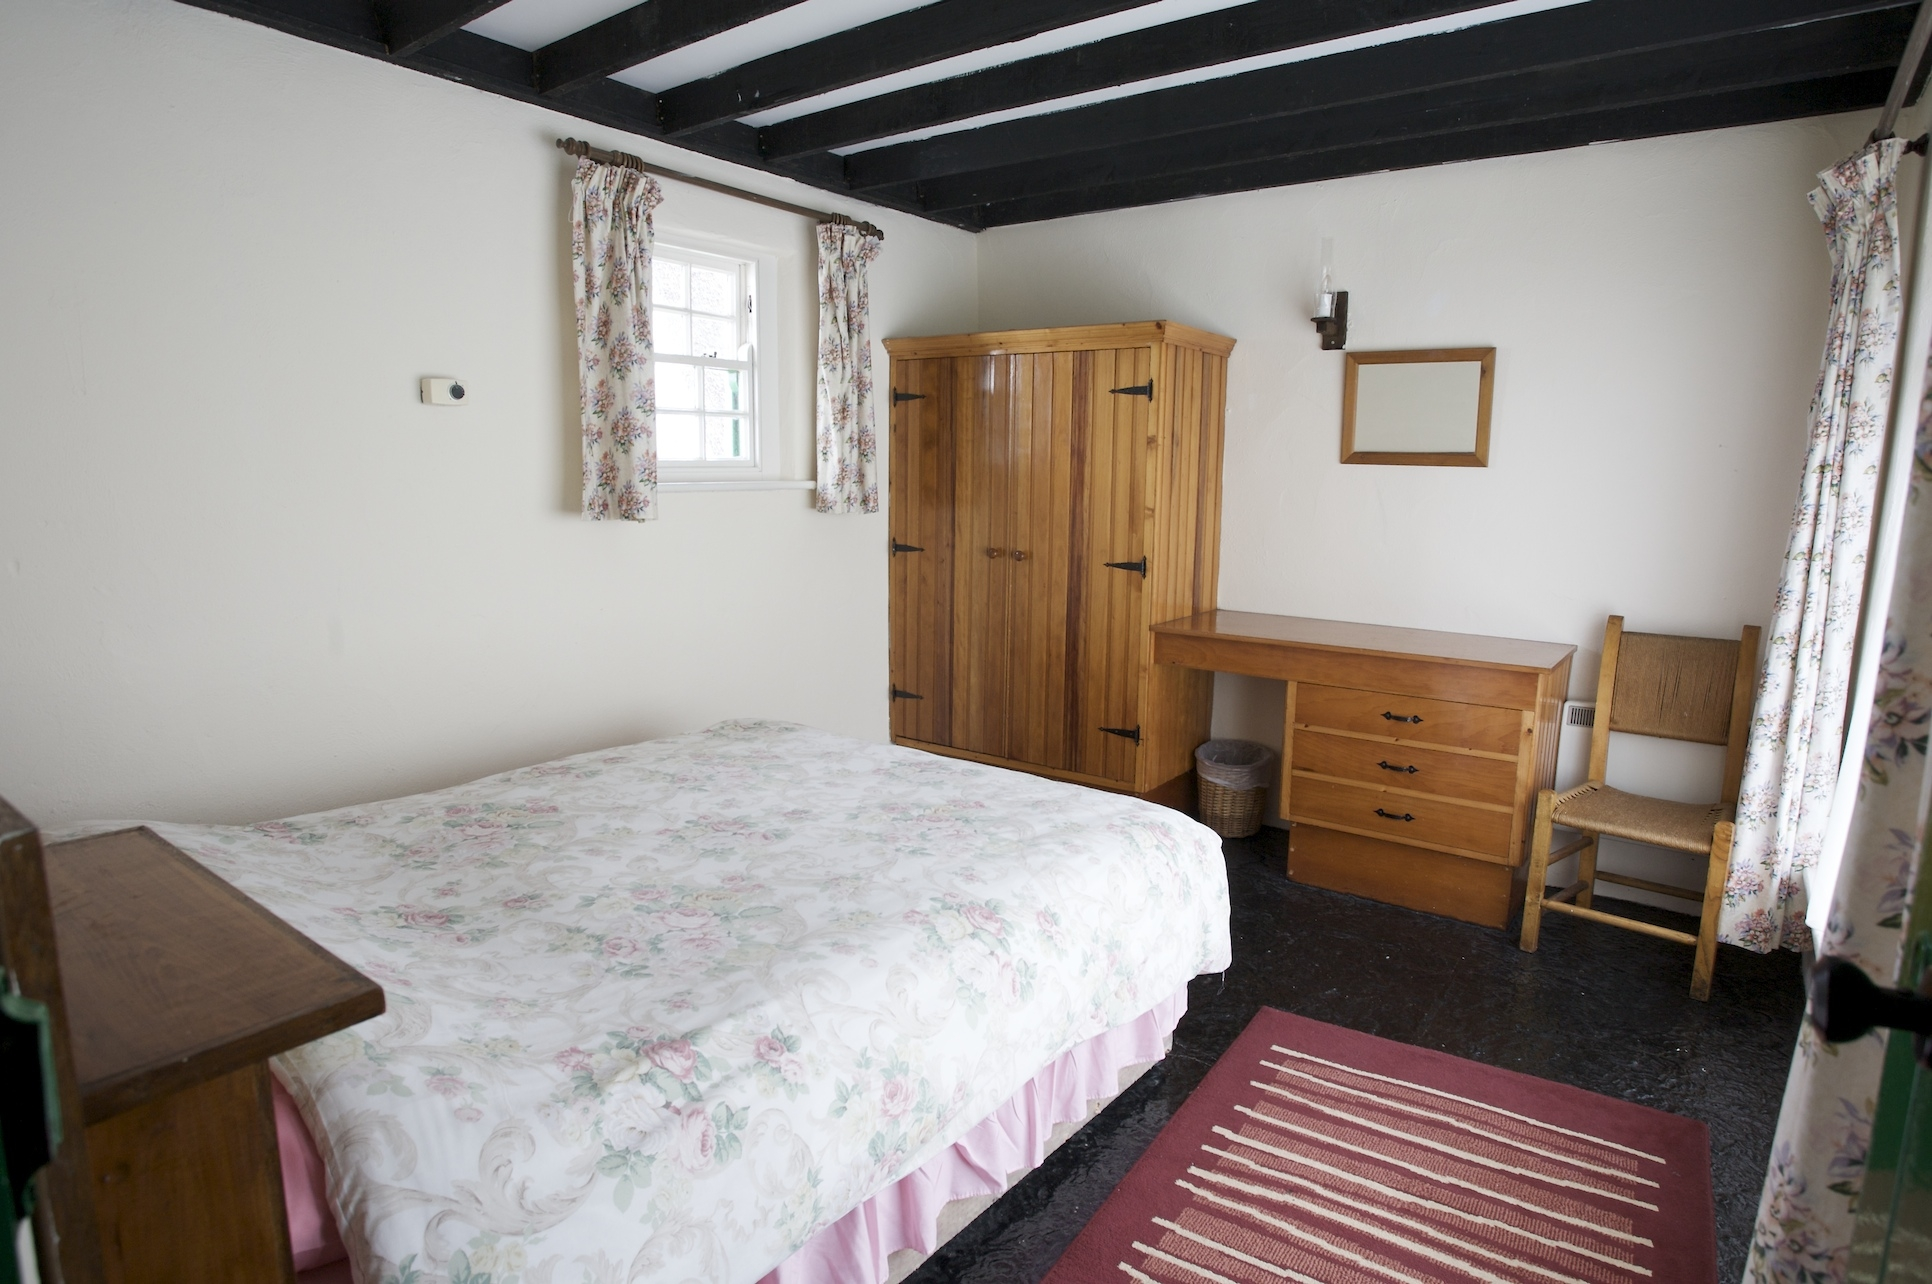 Corofin Bedroom with traditional ceiling beams